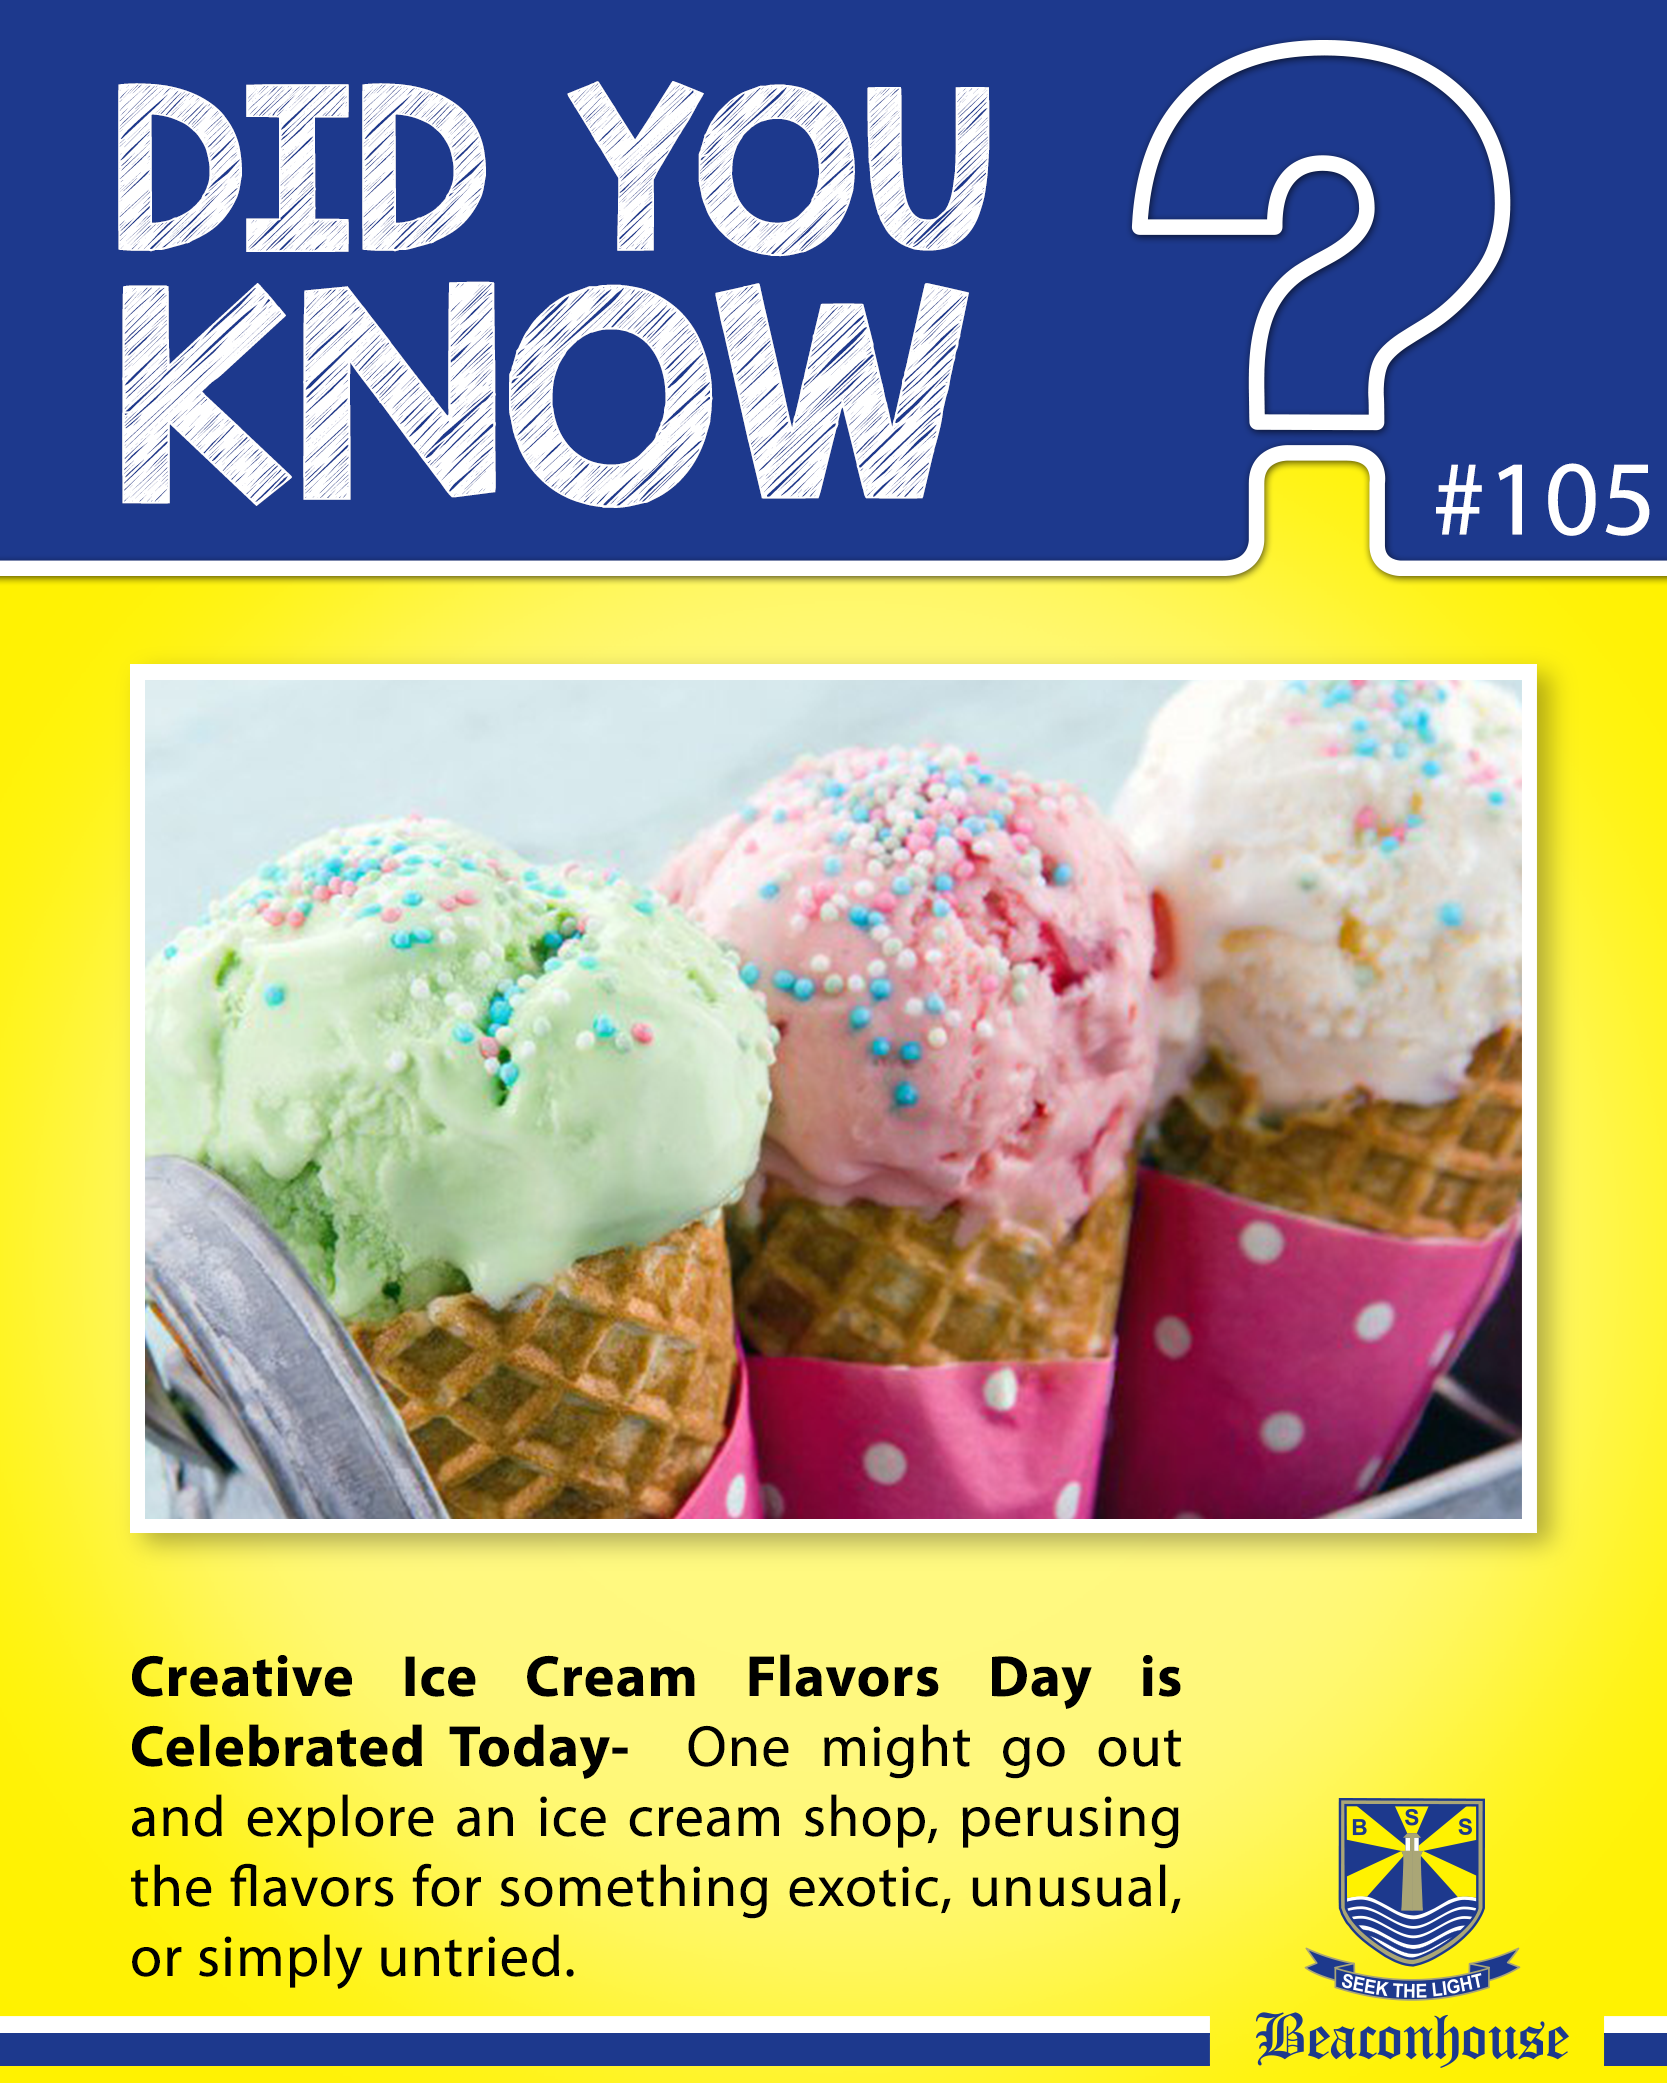 Didyouknow Creative Ice Cream Flavors Day Is Celebrated Today One Might Go Out And Explore An Ice Cream Shop Per Ice Cream Frozen Yogurt Ice Cream Flavors